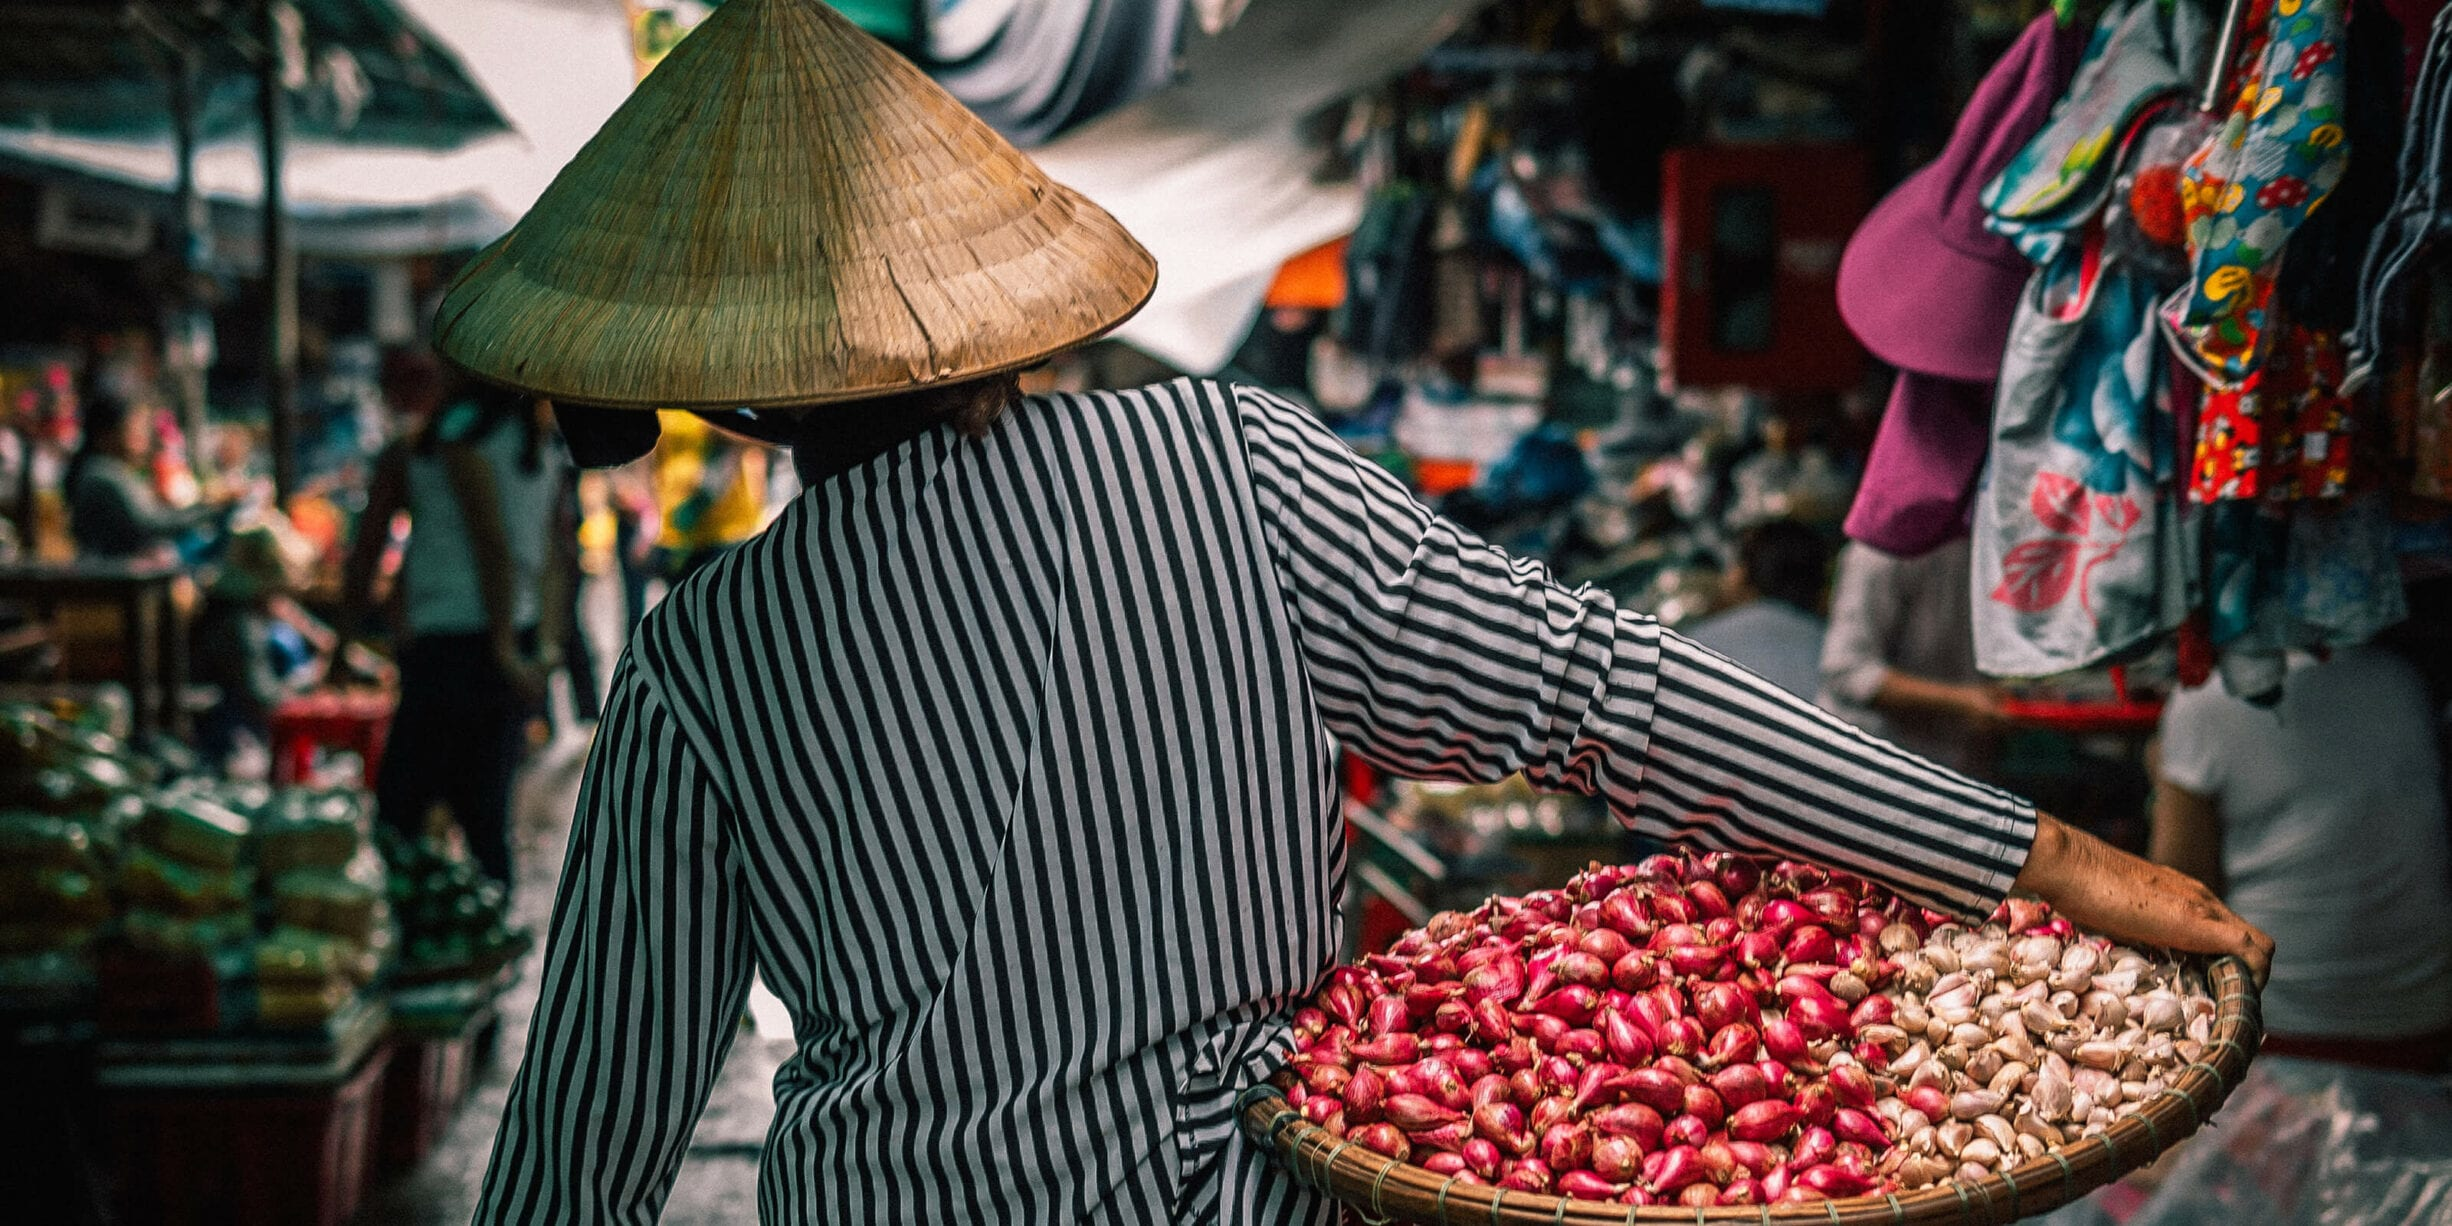 woman in market carrying produce